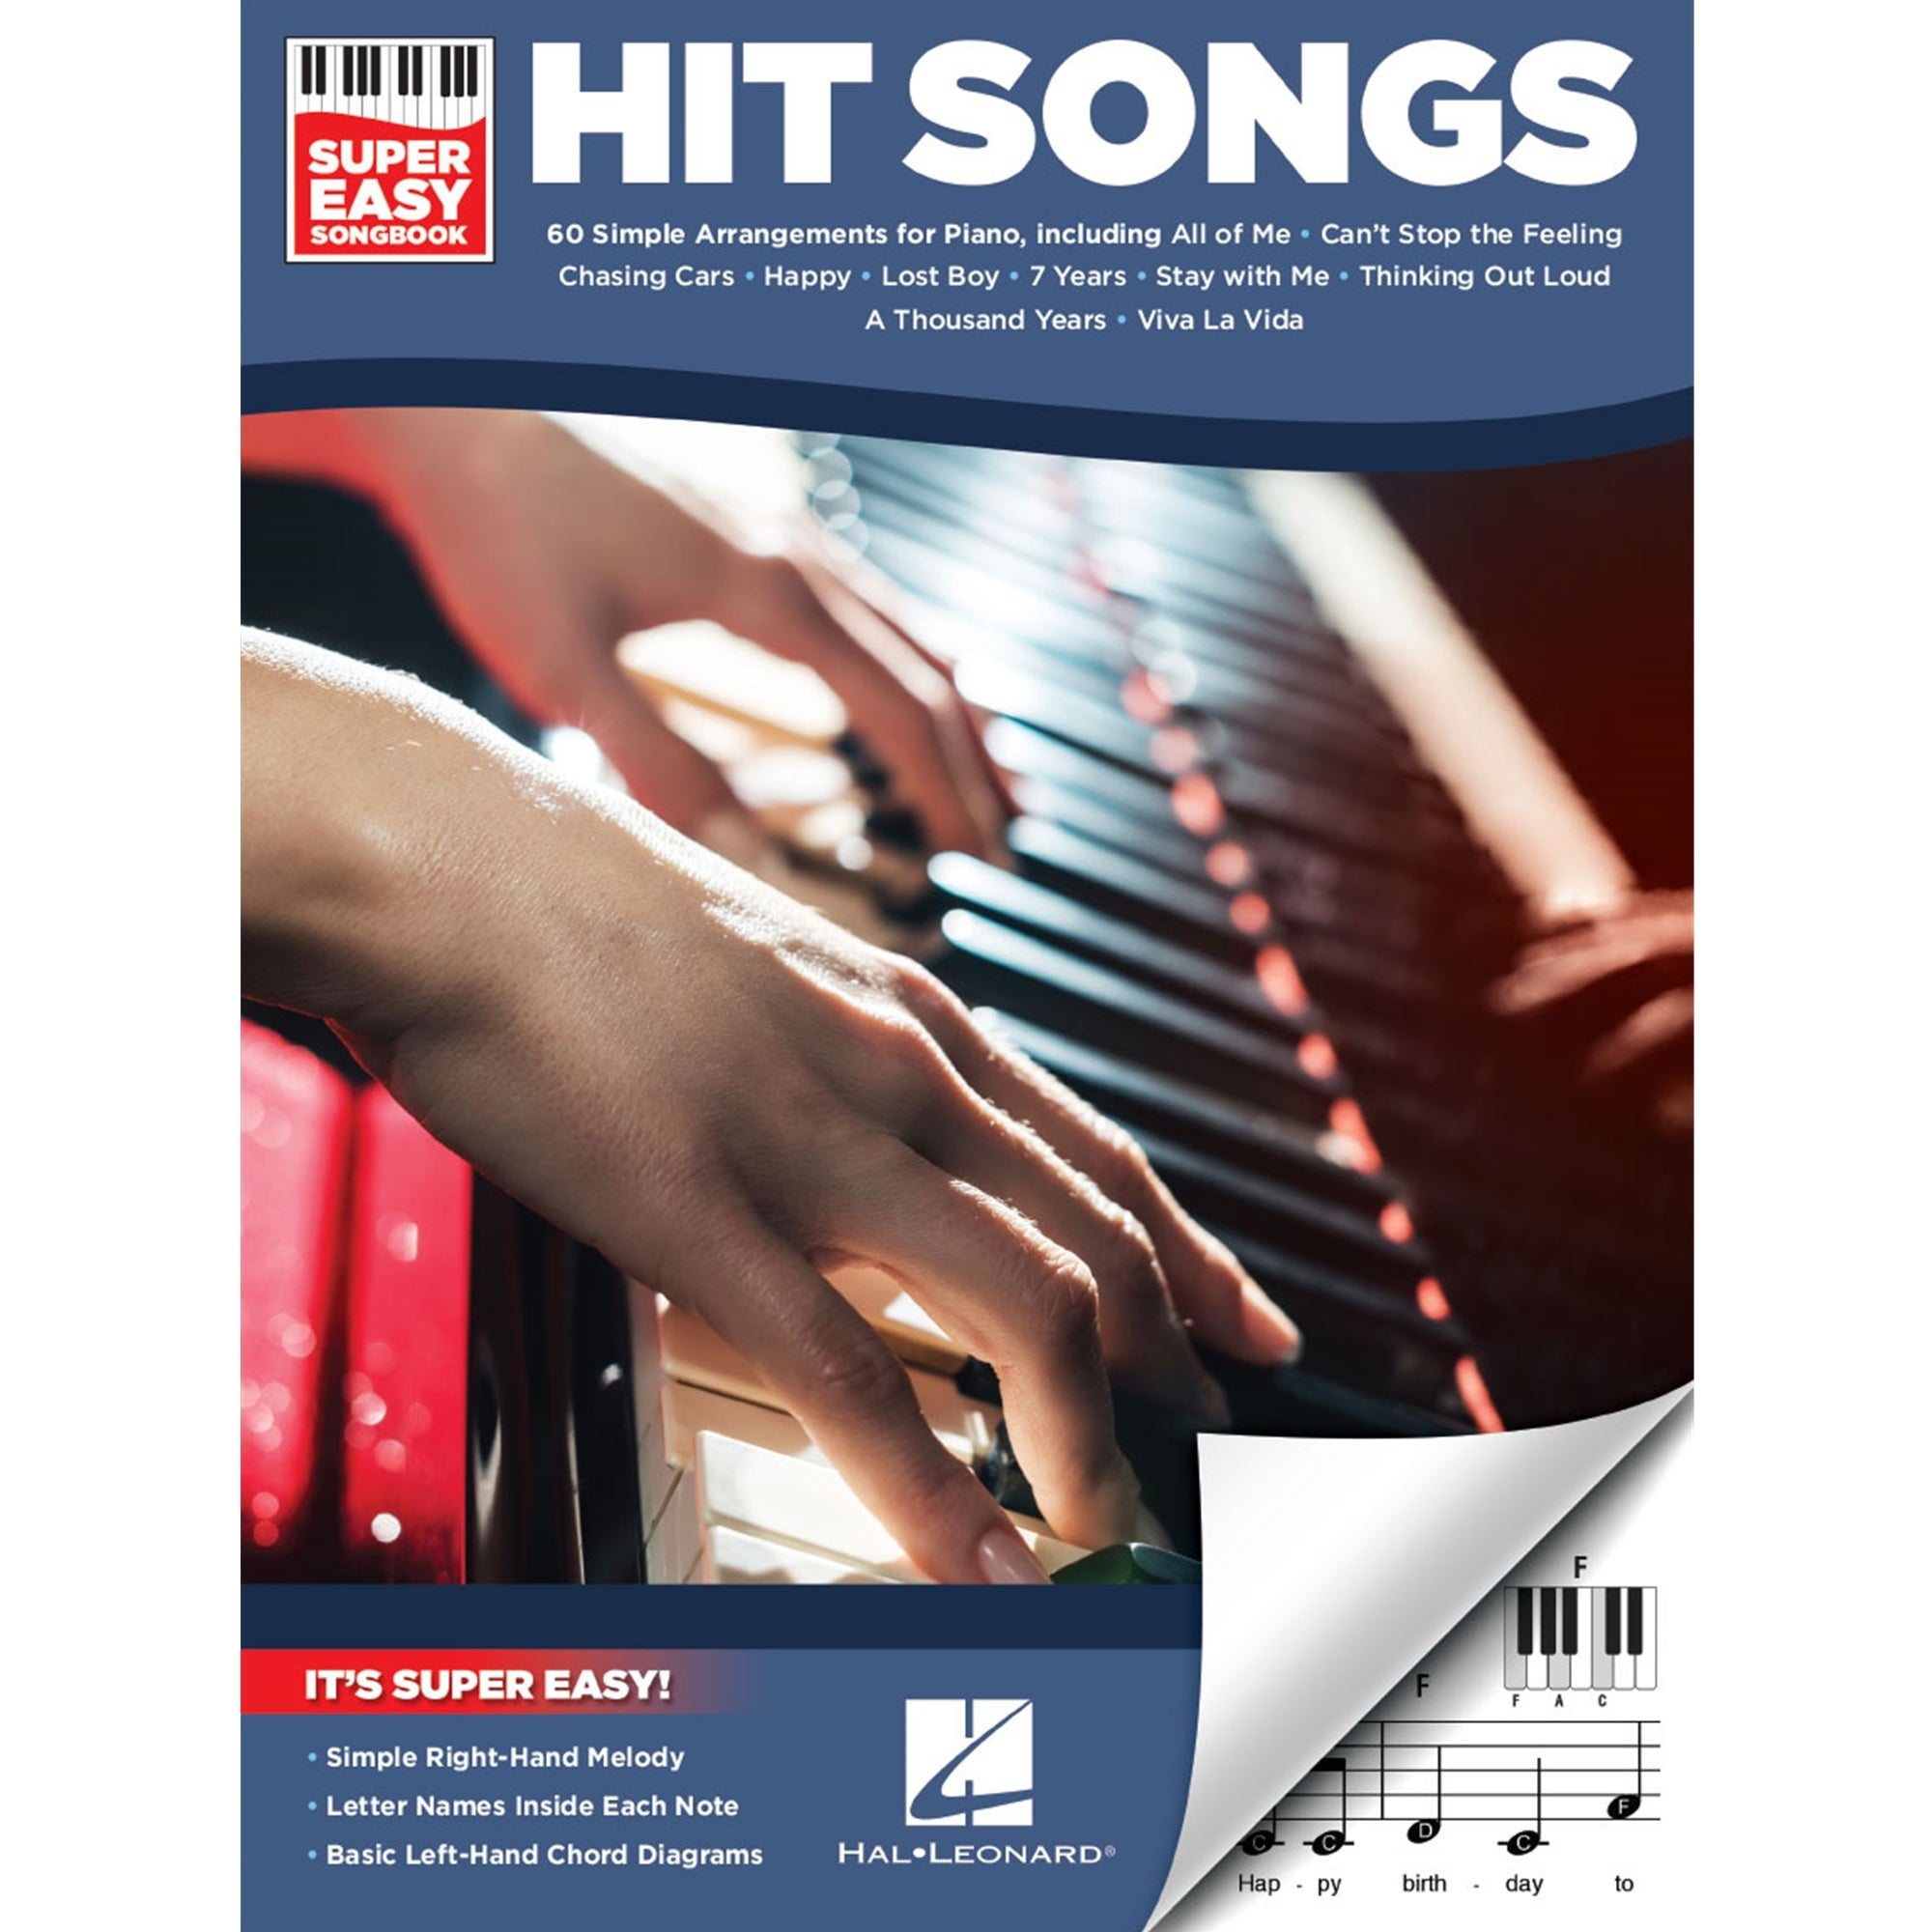 HAL LEONARD 194367 Hit Songs – Super Easy Songbook